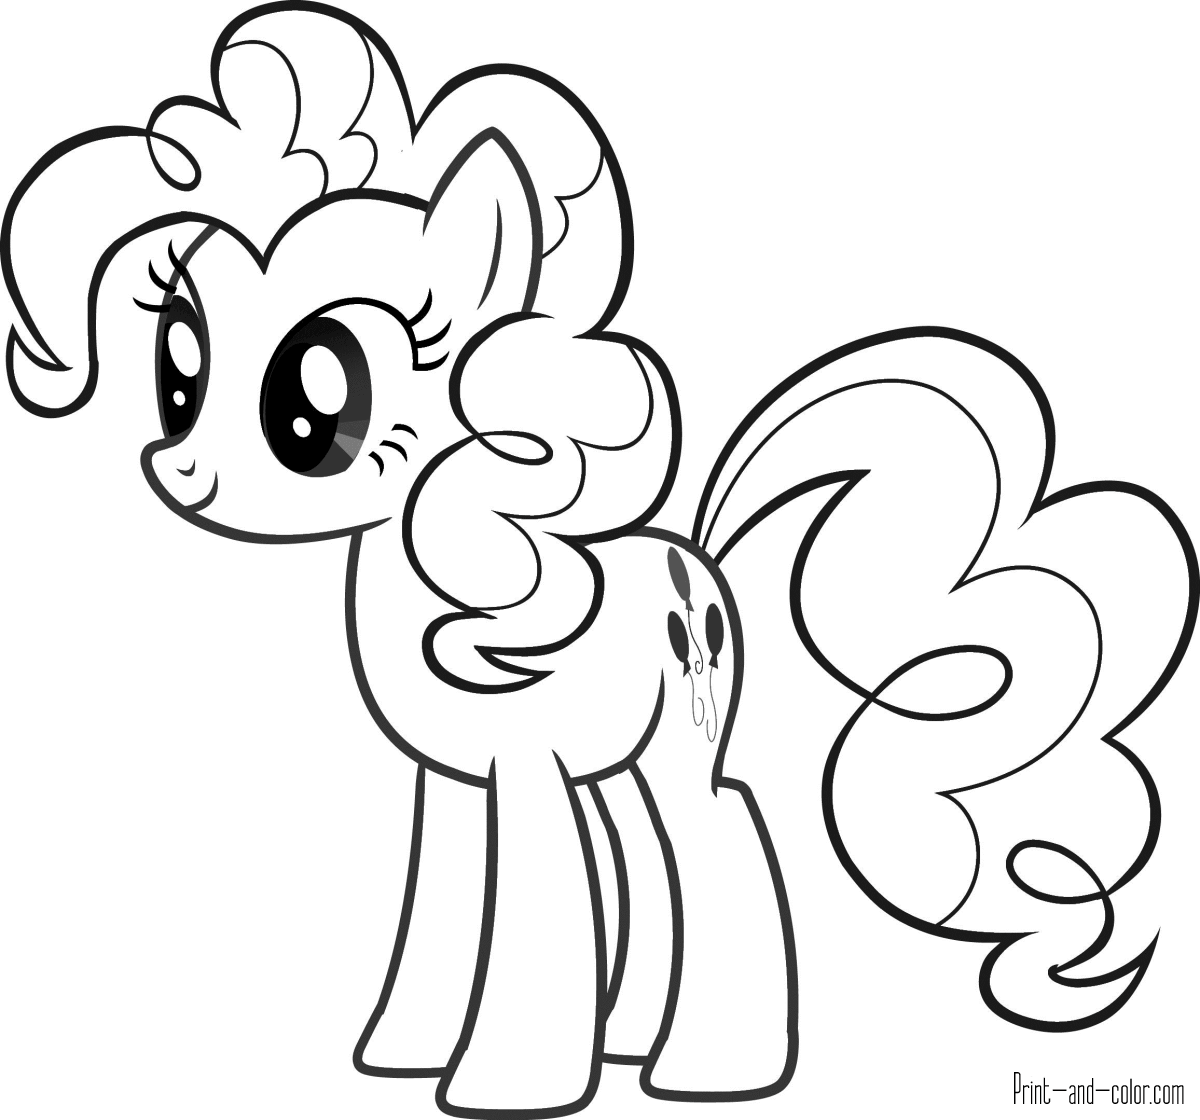 pony for coloring free printable my little pony coloring pages for kids pony for coloring